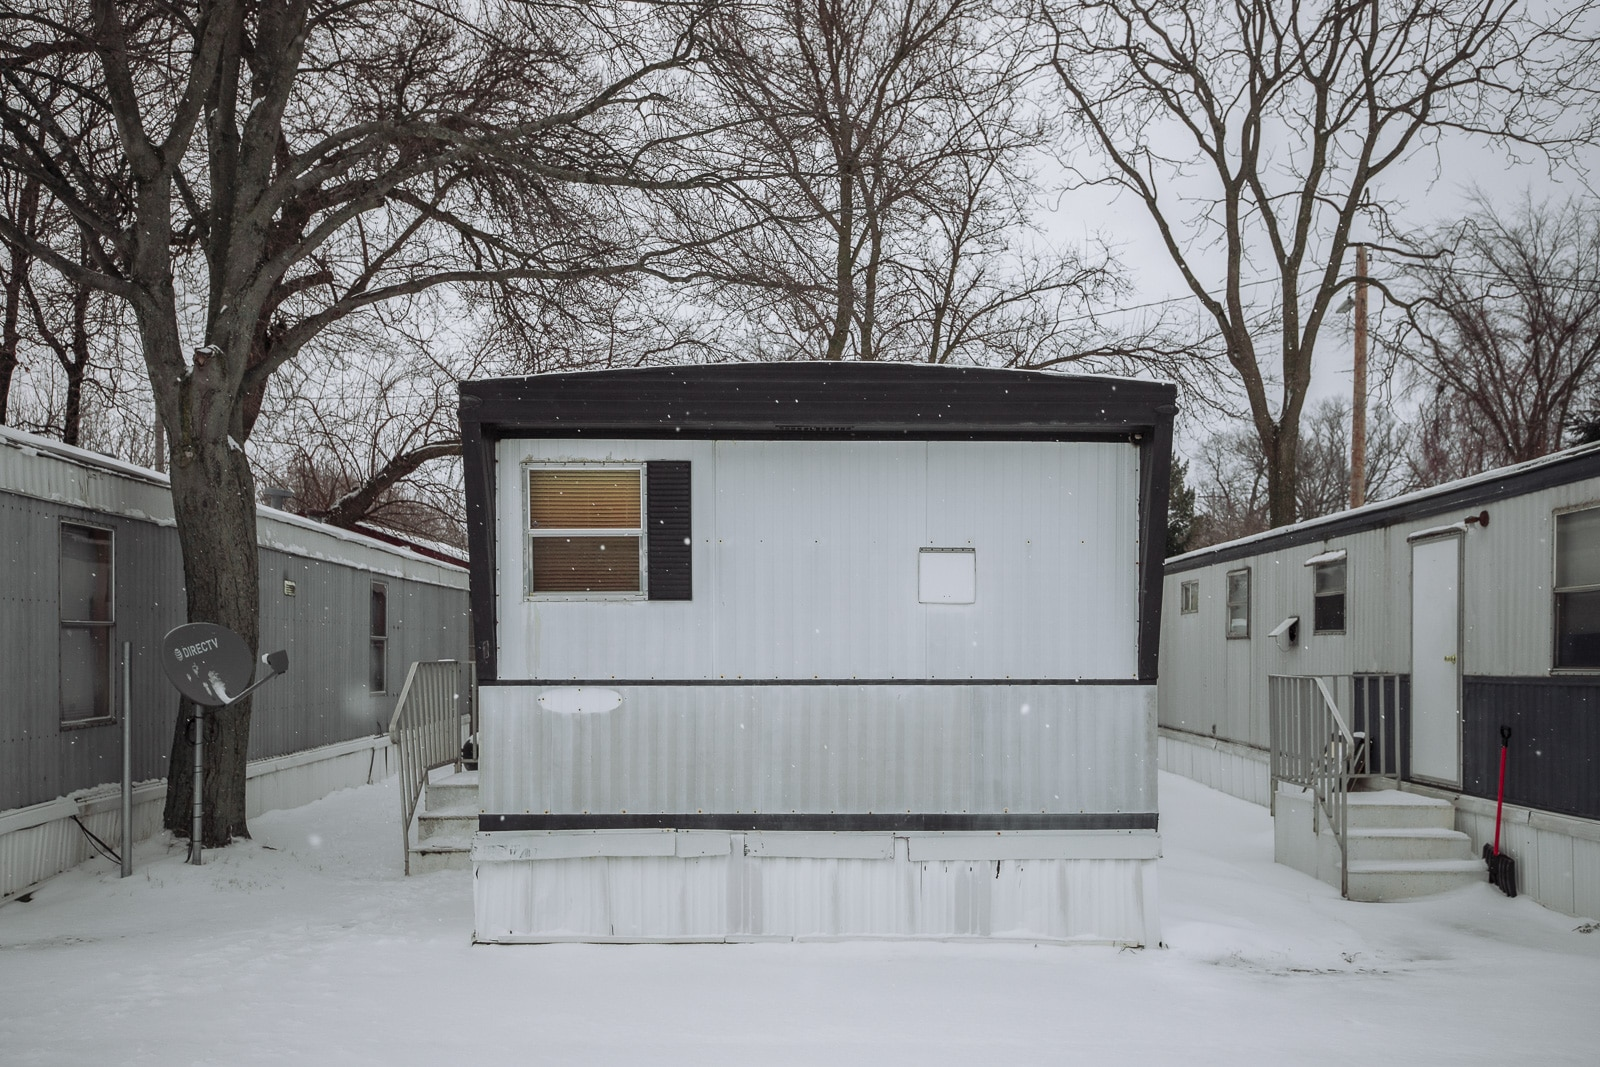 Trailer park covered with snow in Holland, Michigan